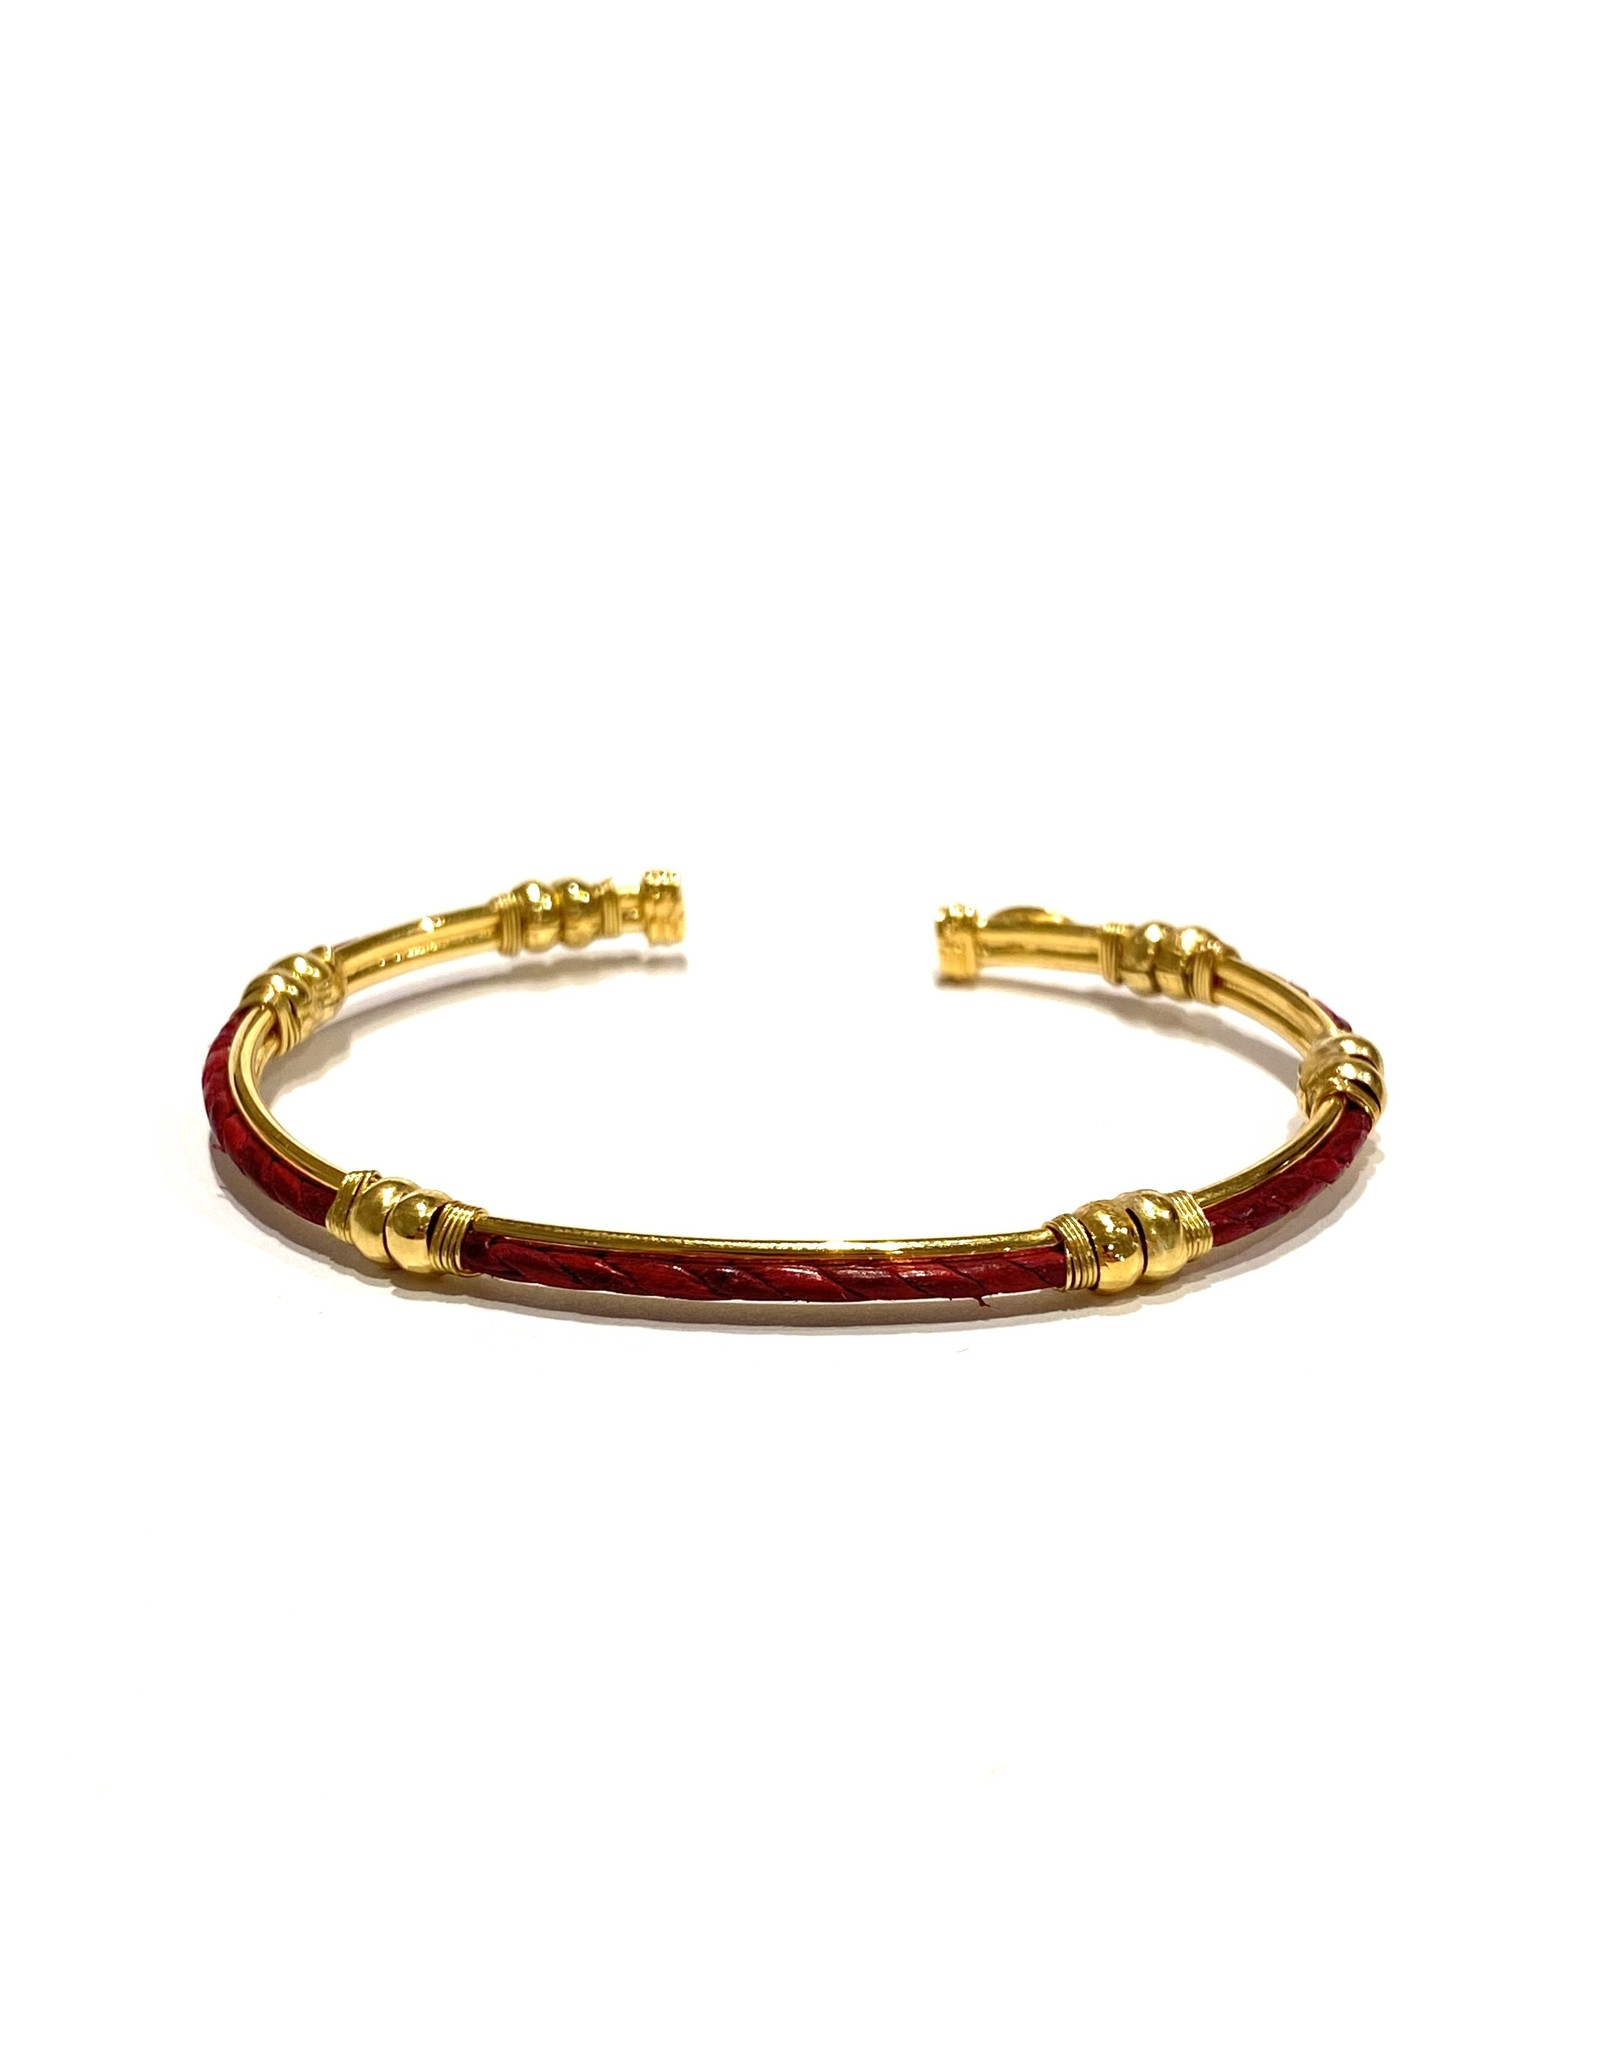 GAS Bijoux Bracelet Zanzibar Leather Gold